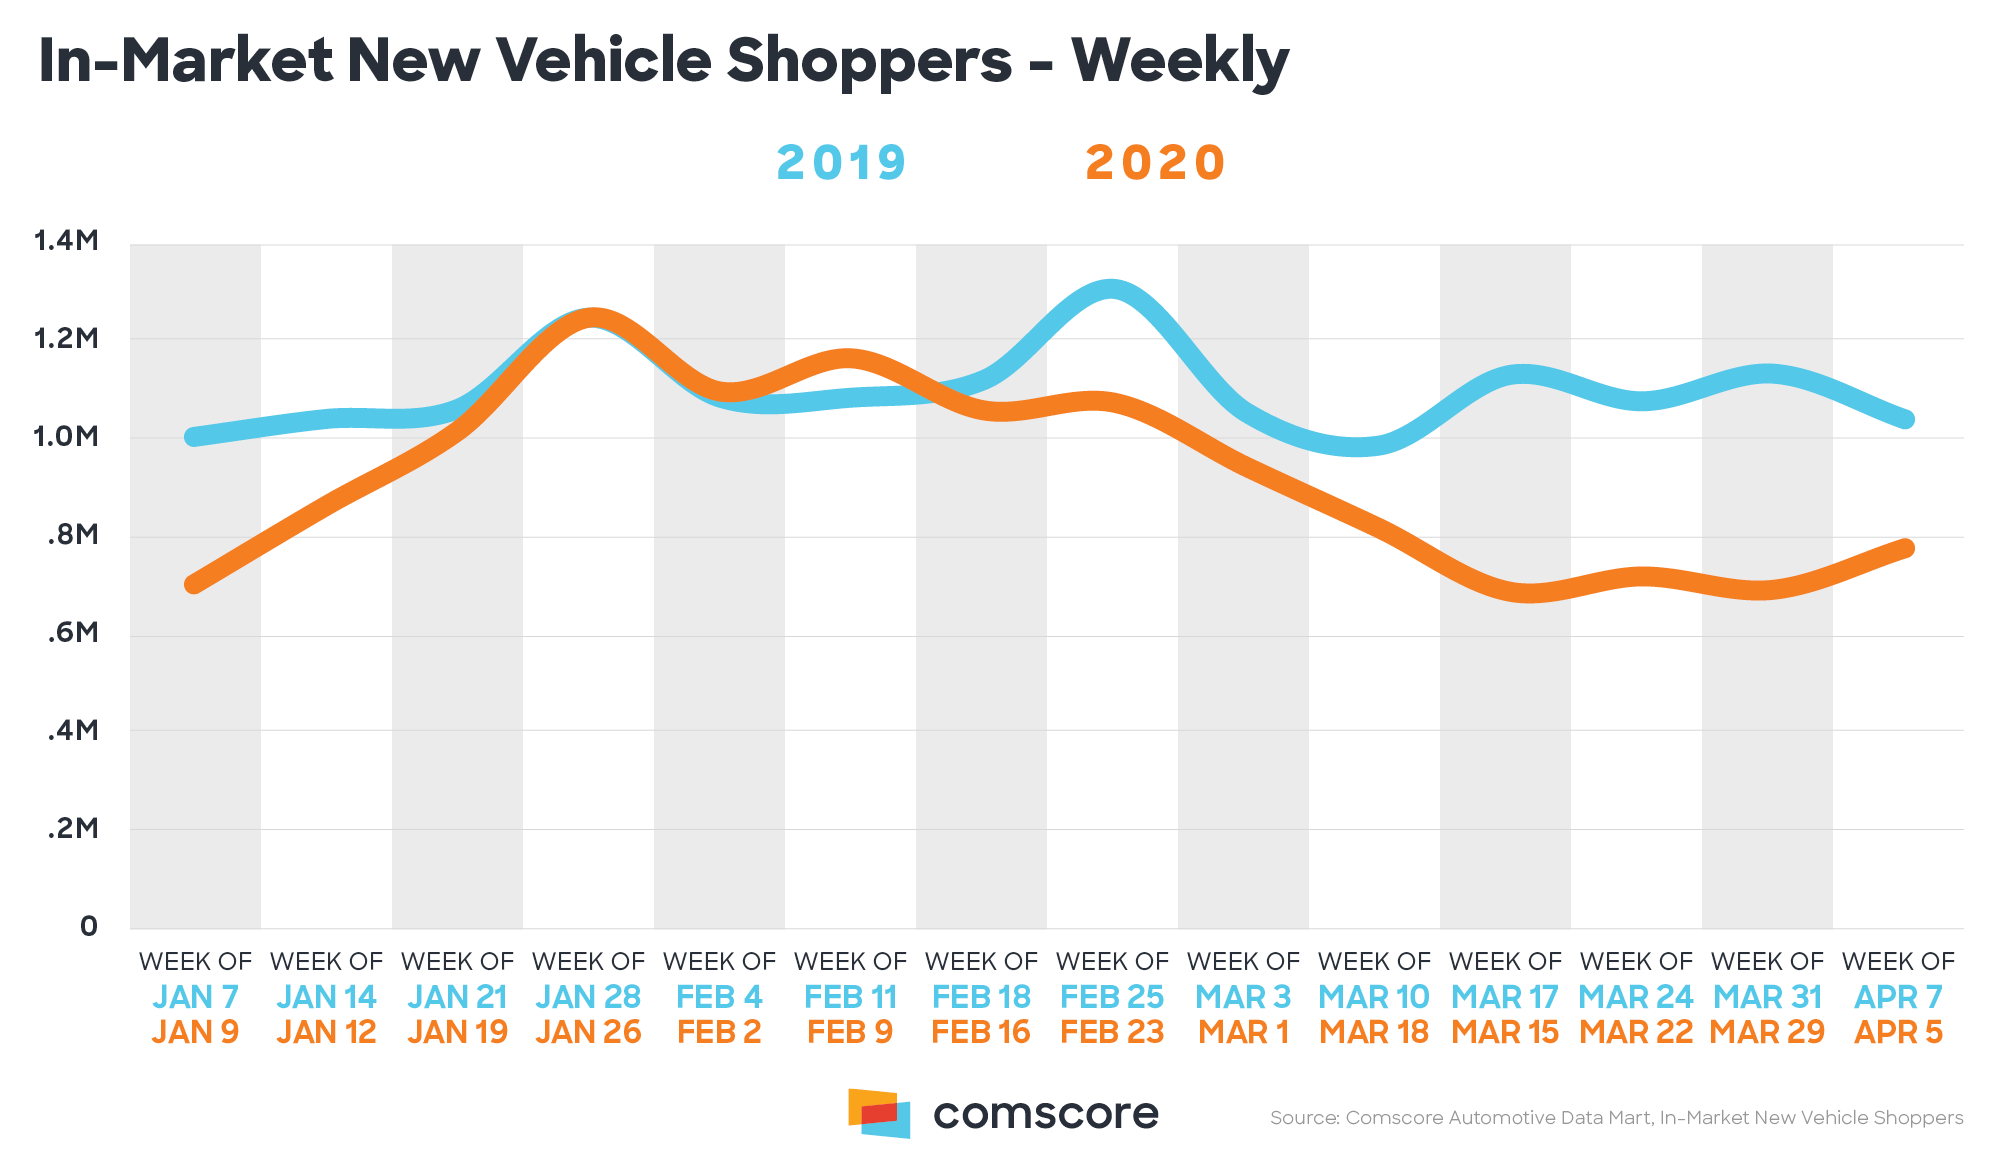 Comscore Sees Signs of Stabilizing Automotive Consumer Demand April registers slight uptick in new vehicle interest following significant declines